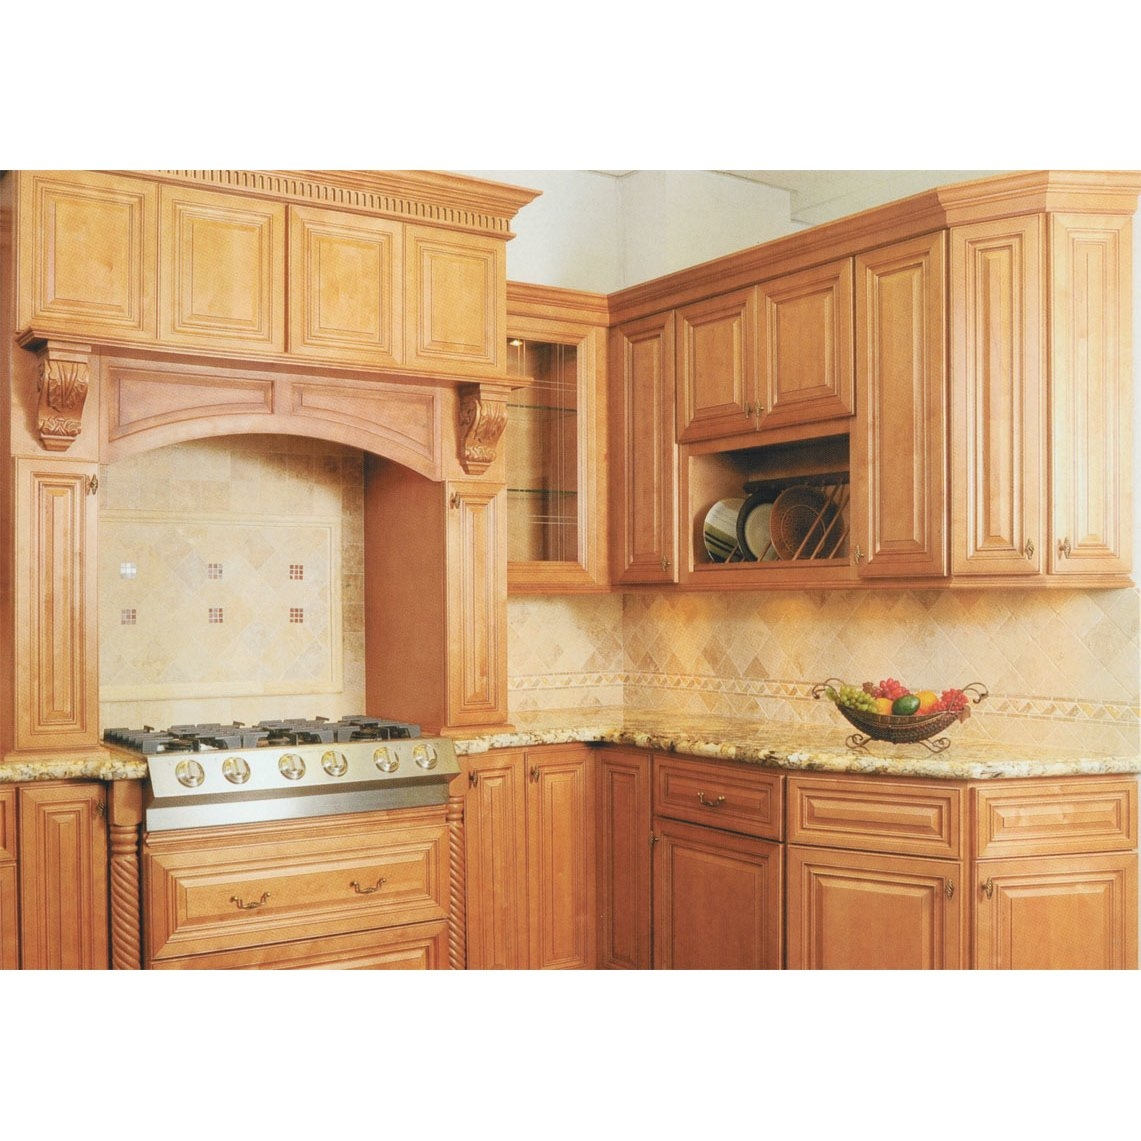 Kitchen Wall Cabinets 30 X 42